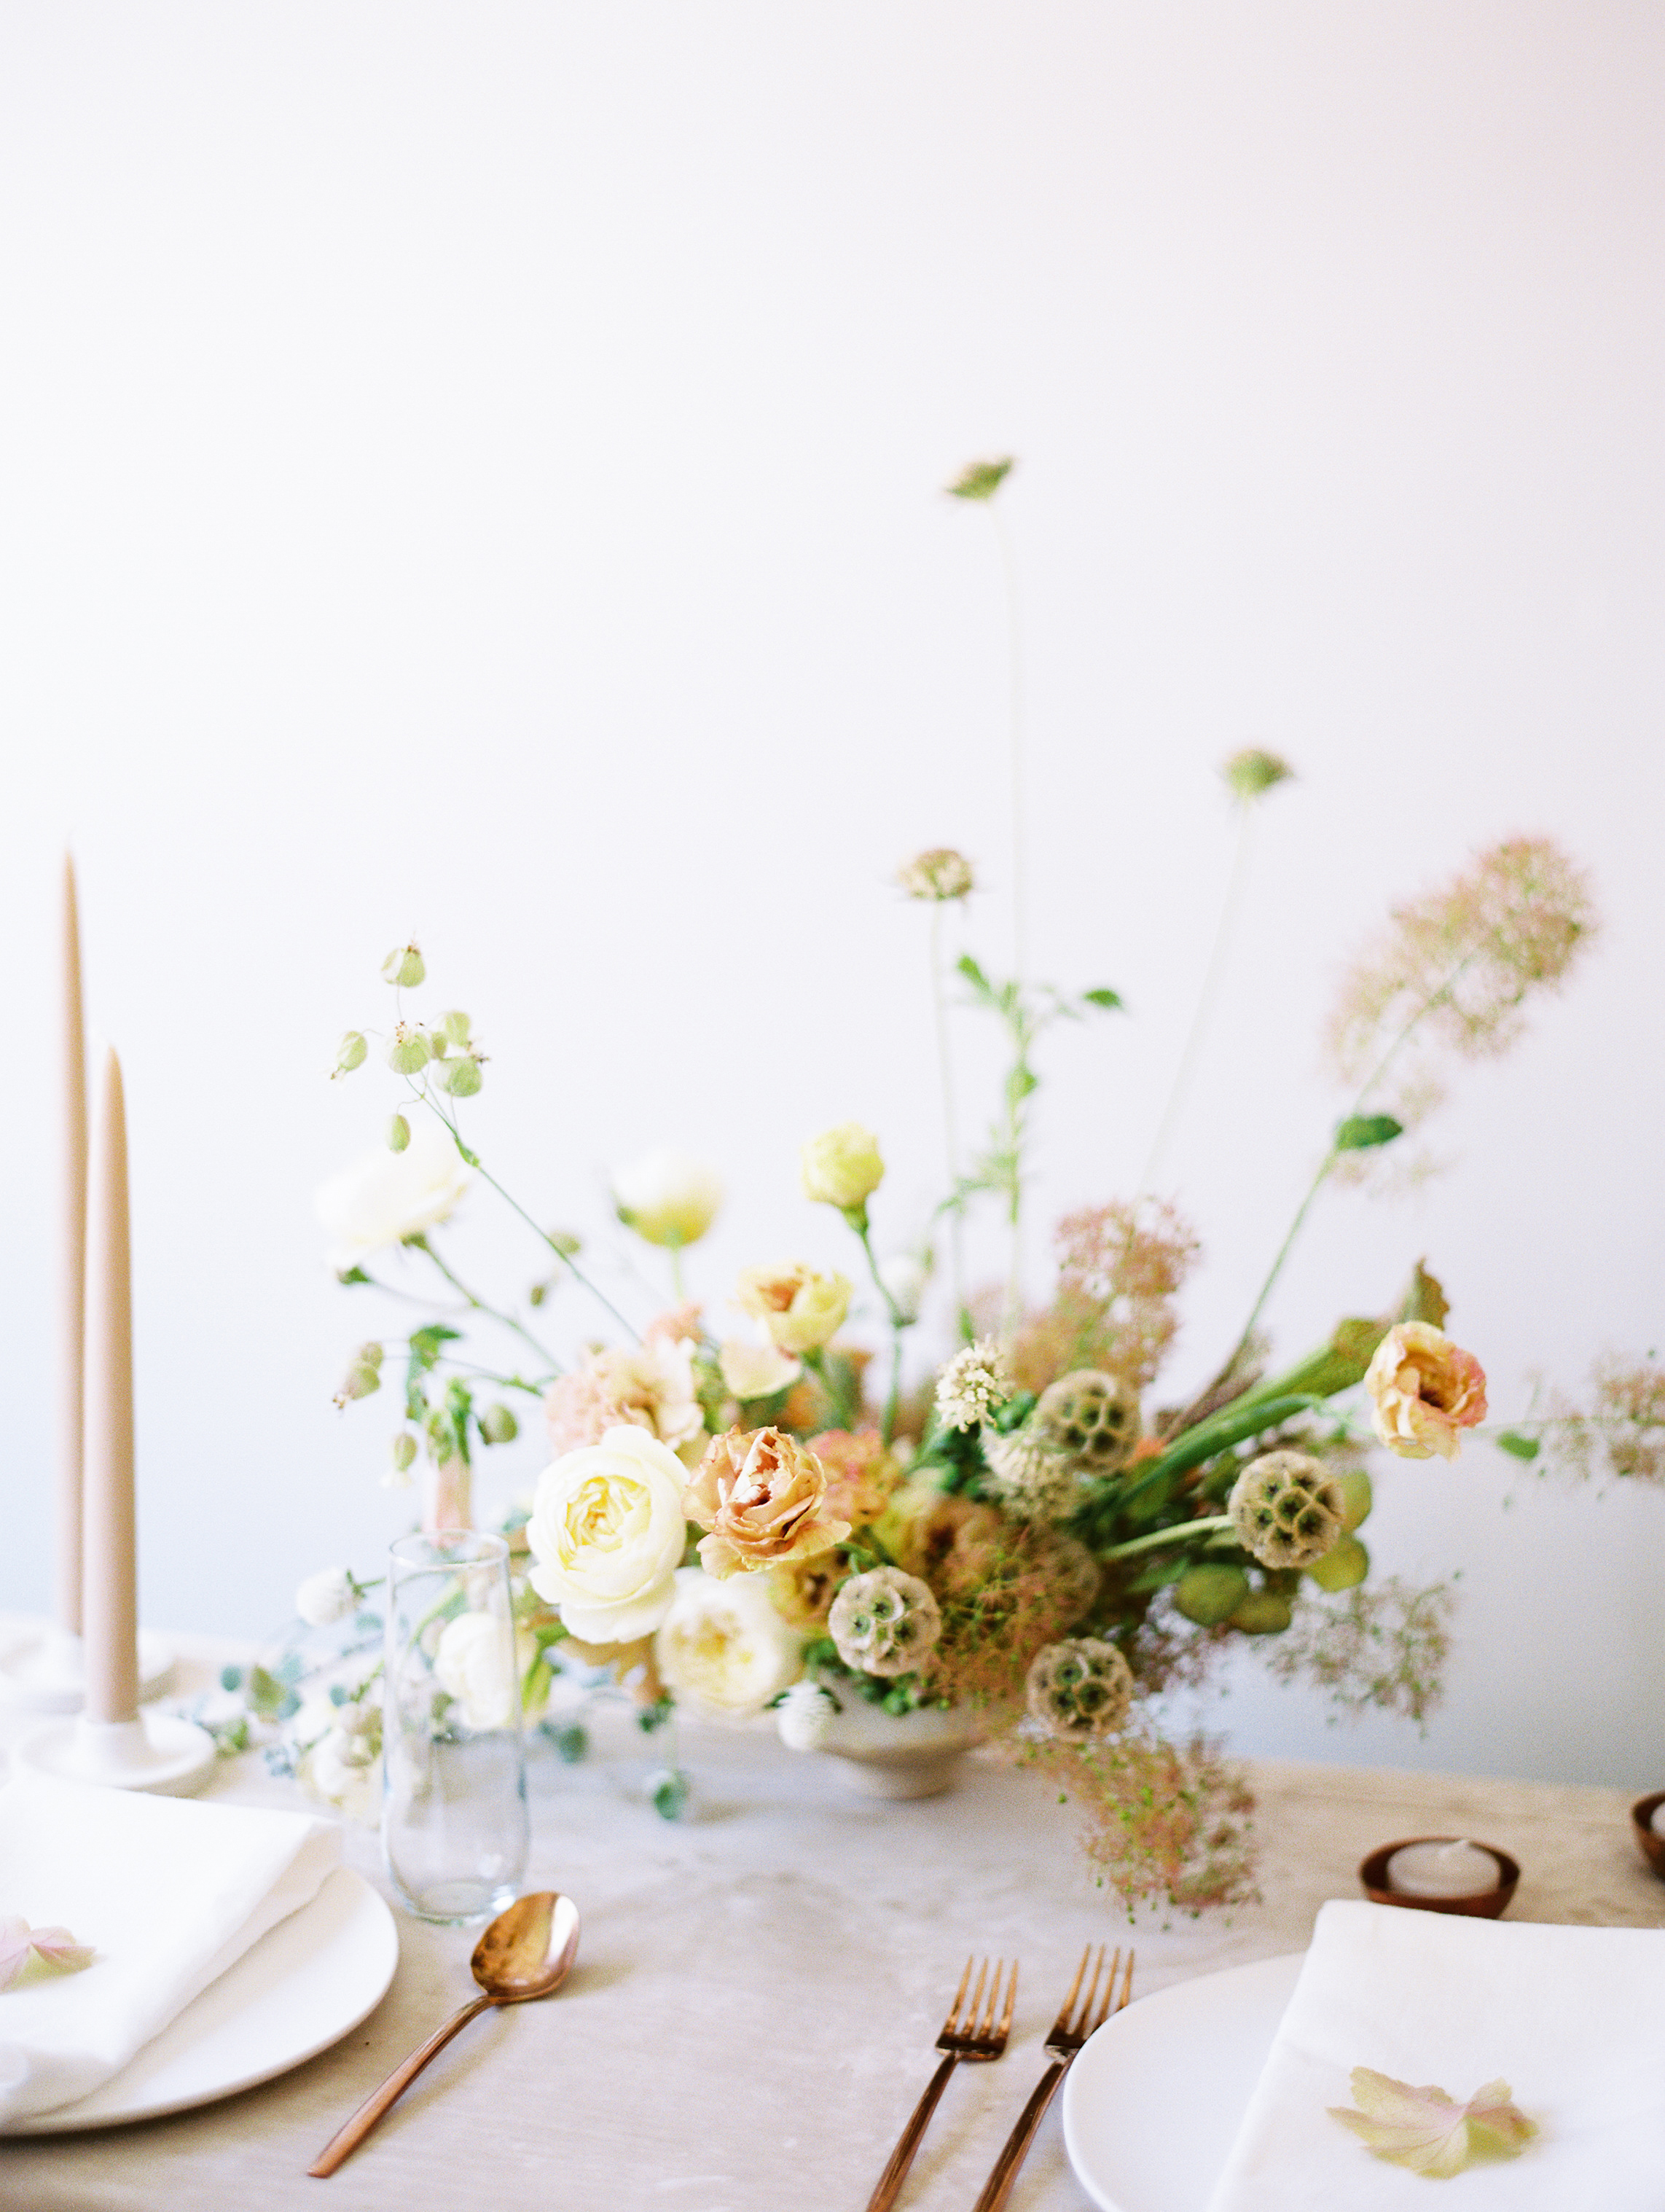 Tablescape8.jpg